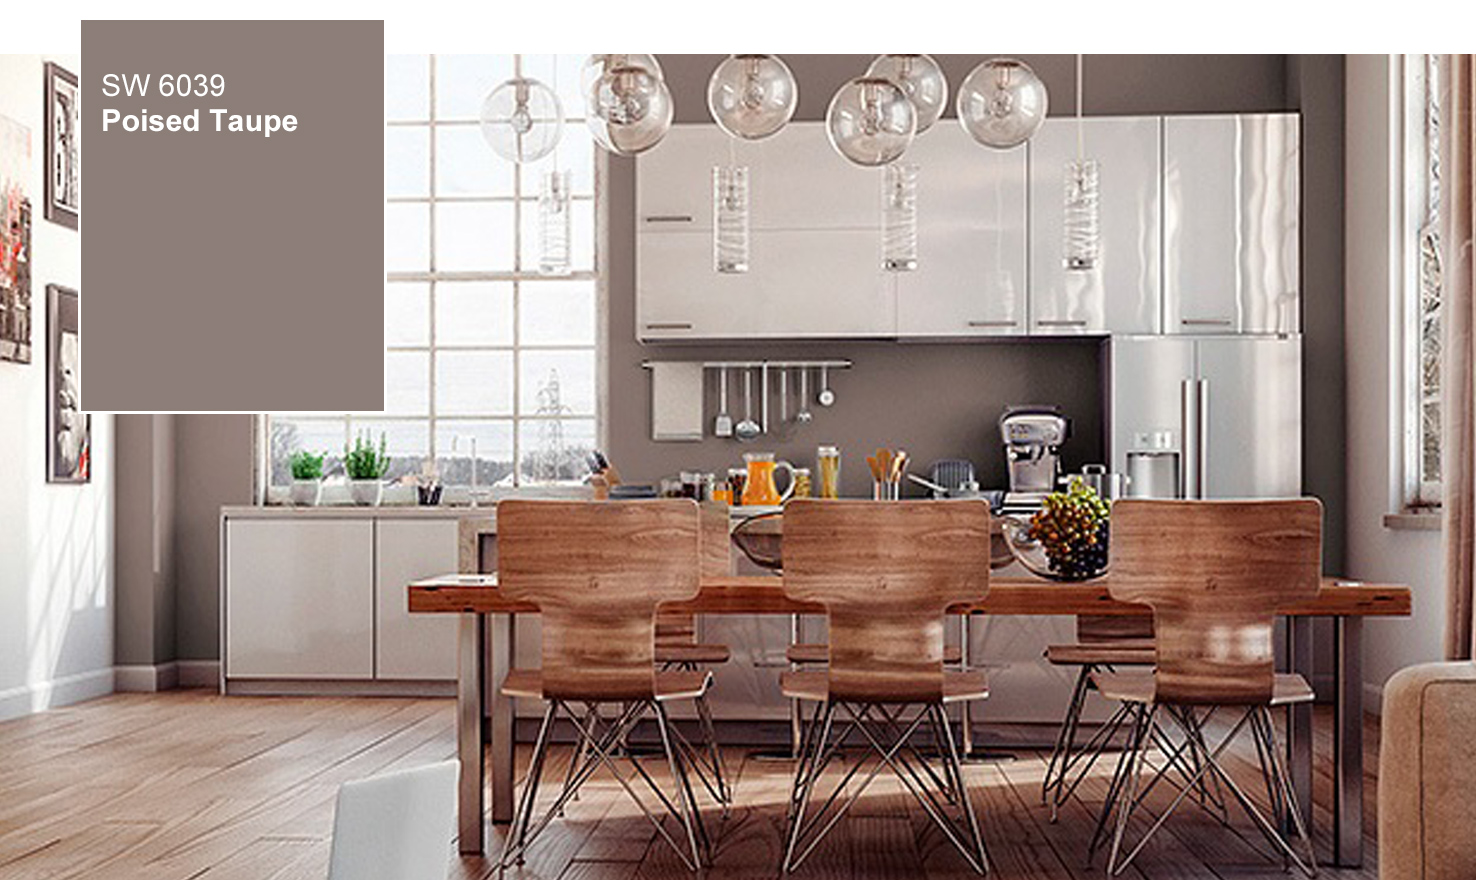 Best Kitchen Gallery: 2017 Sherwin Williams Color Of The Year Poised Taupe of Taupe Painted Kitchen Cabinet Colors on rachelxblog.com